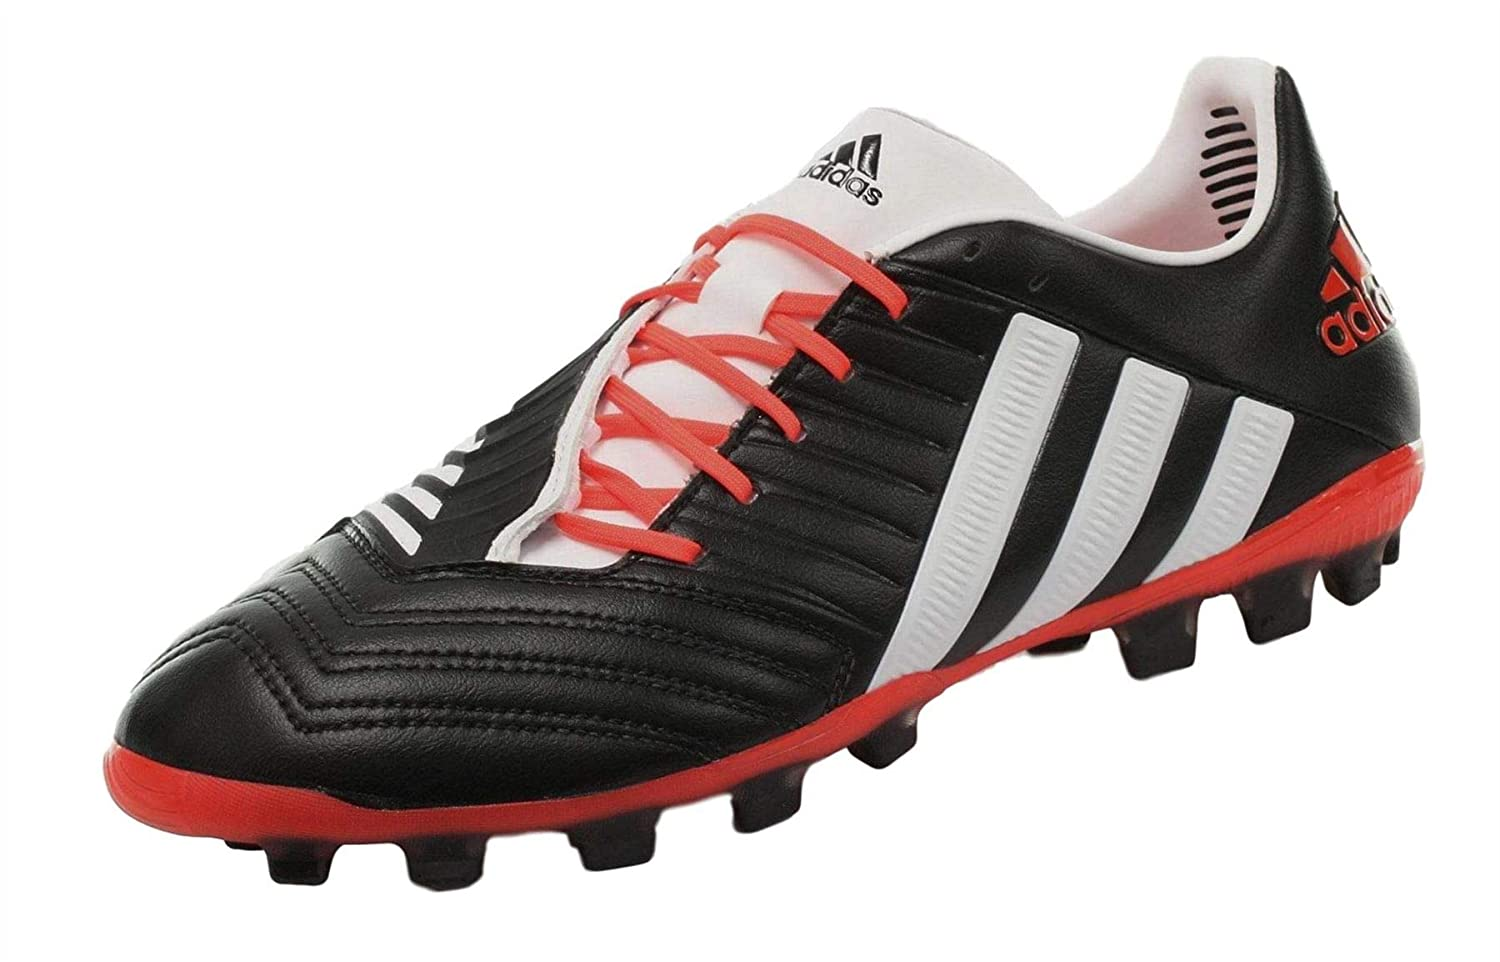 71c65bc4b141 adidas Predator Incurza TRX AG Artificial Ground Mens Rugby Boots   Amazon.co.uk  Shoes   Bags